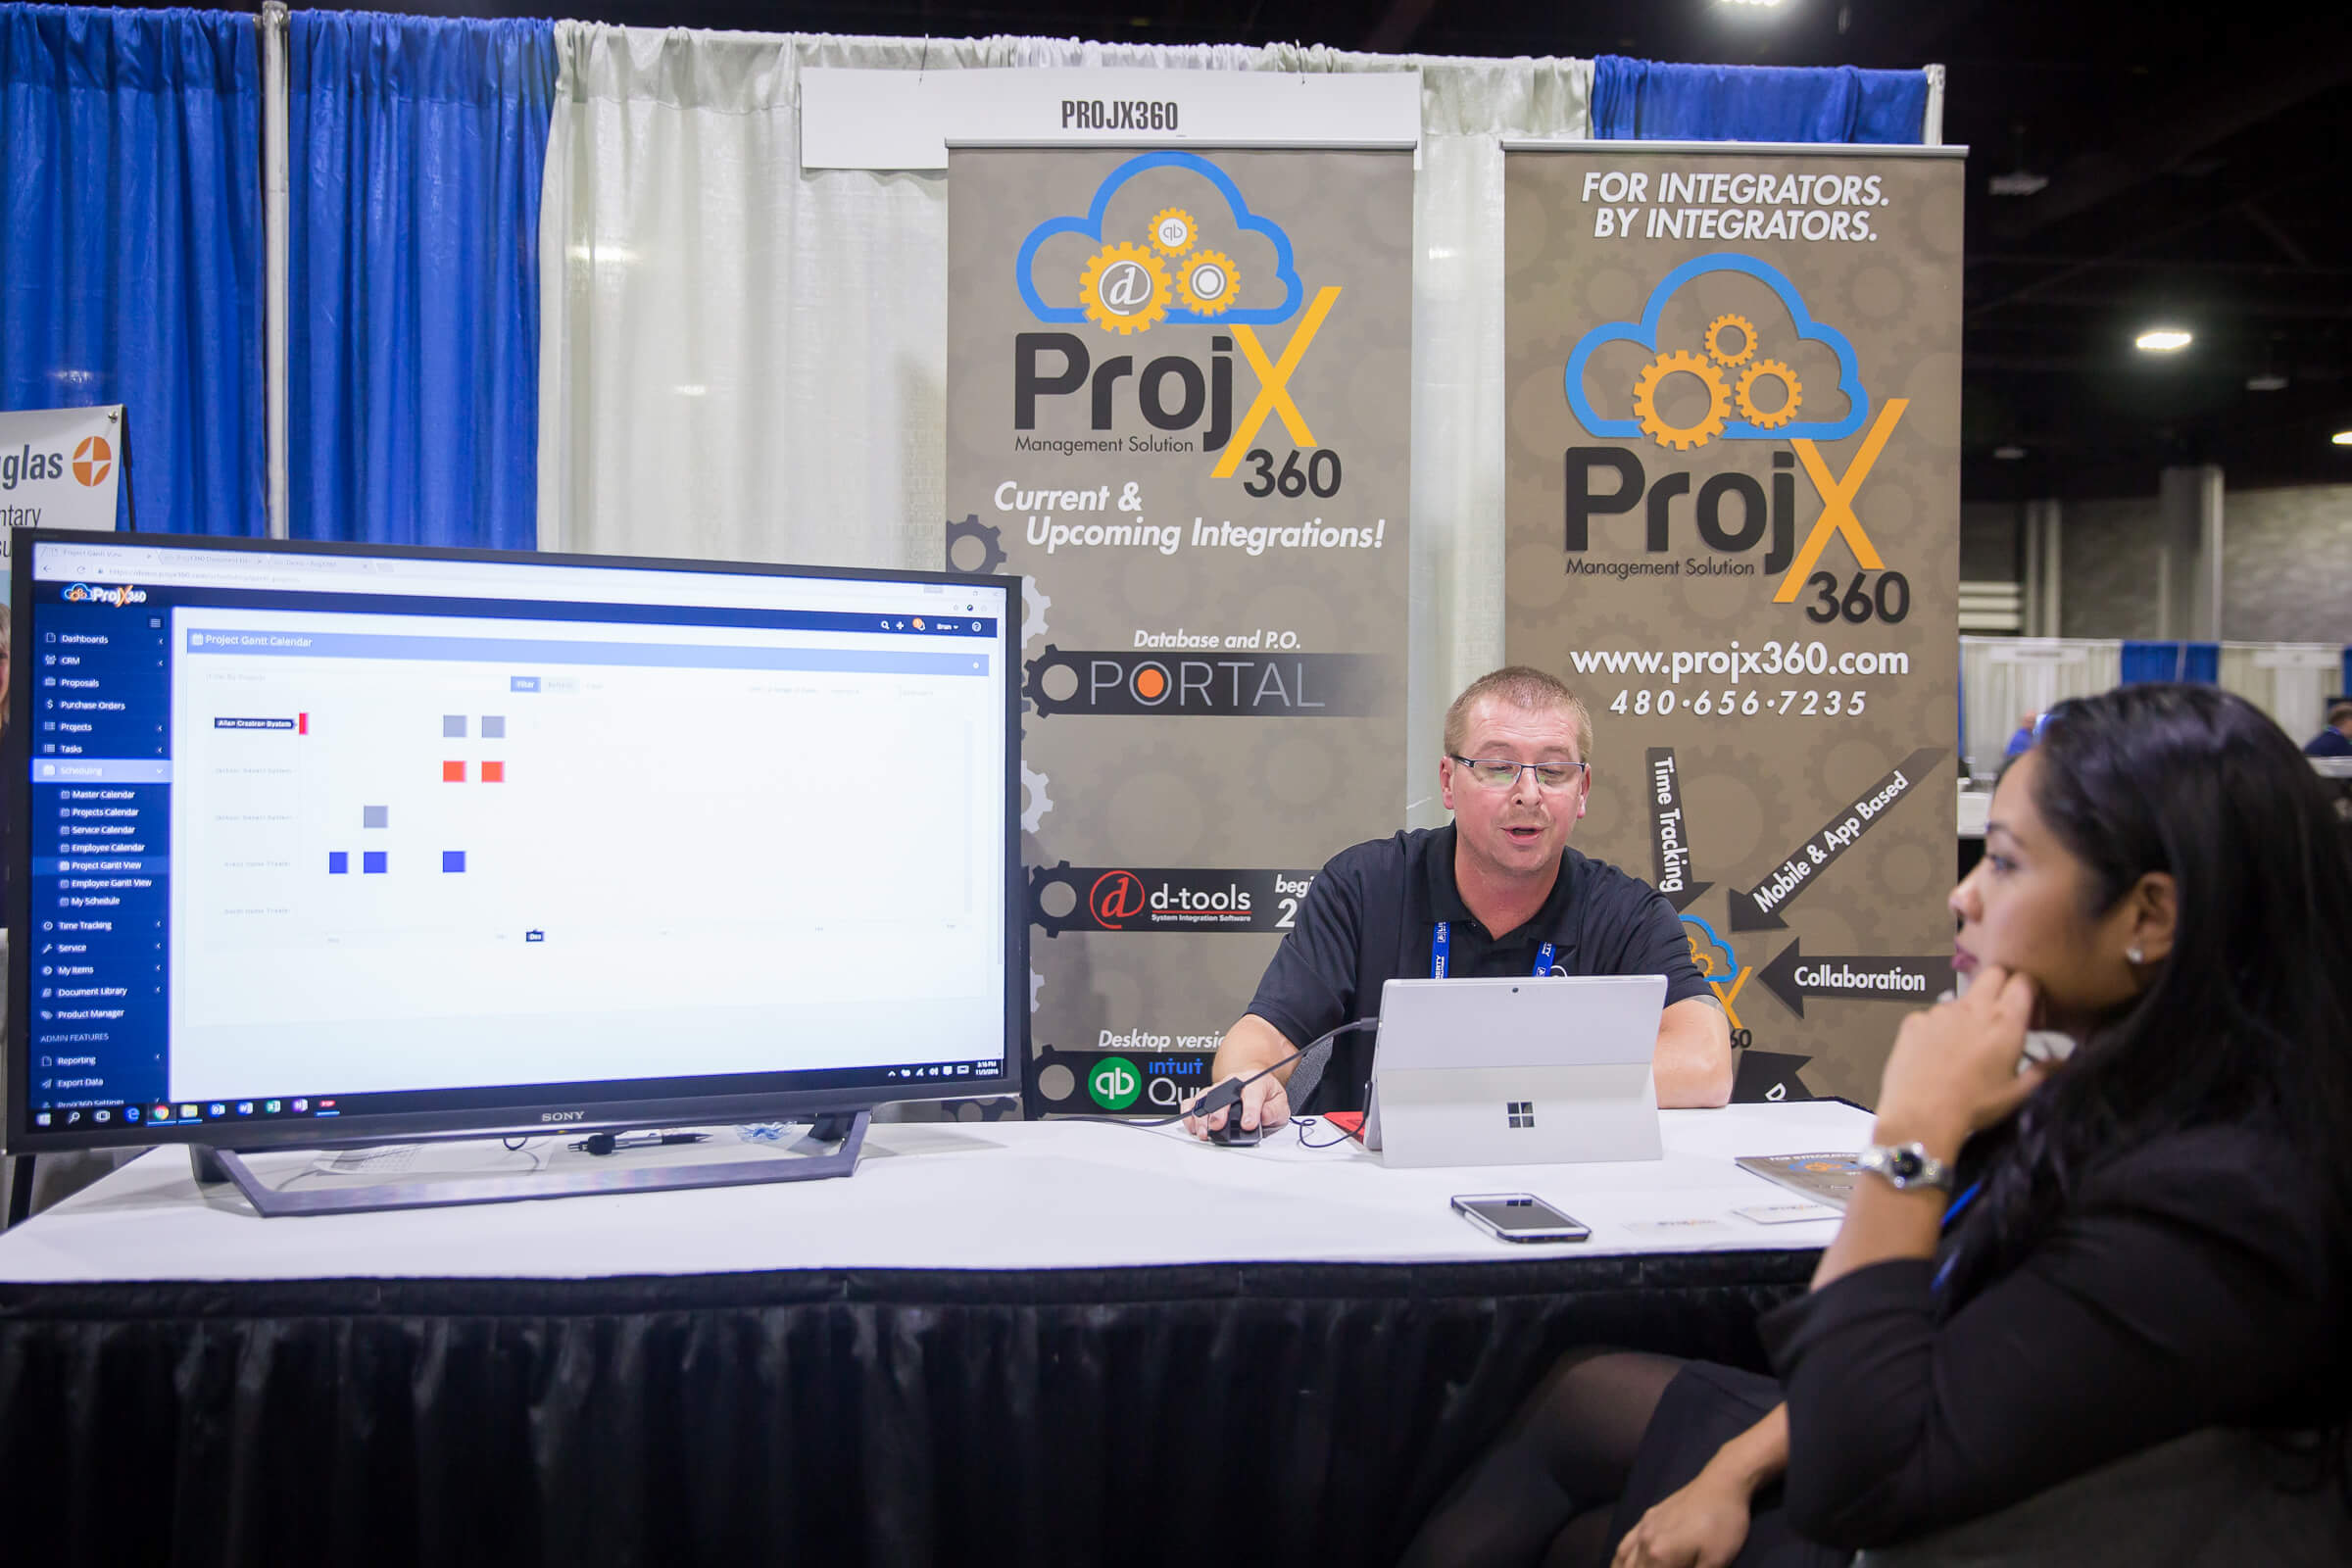 The ProjX360 software was on display at the 2016 Total Tech Summit.